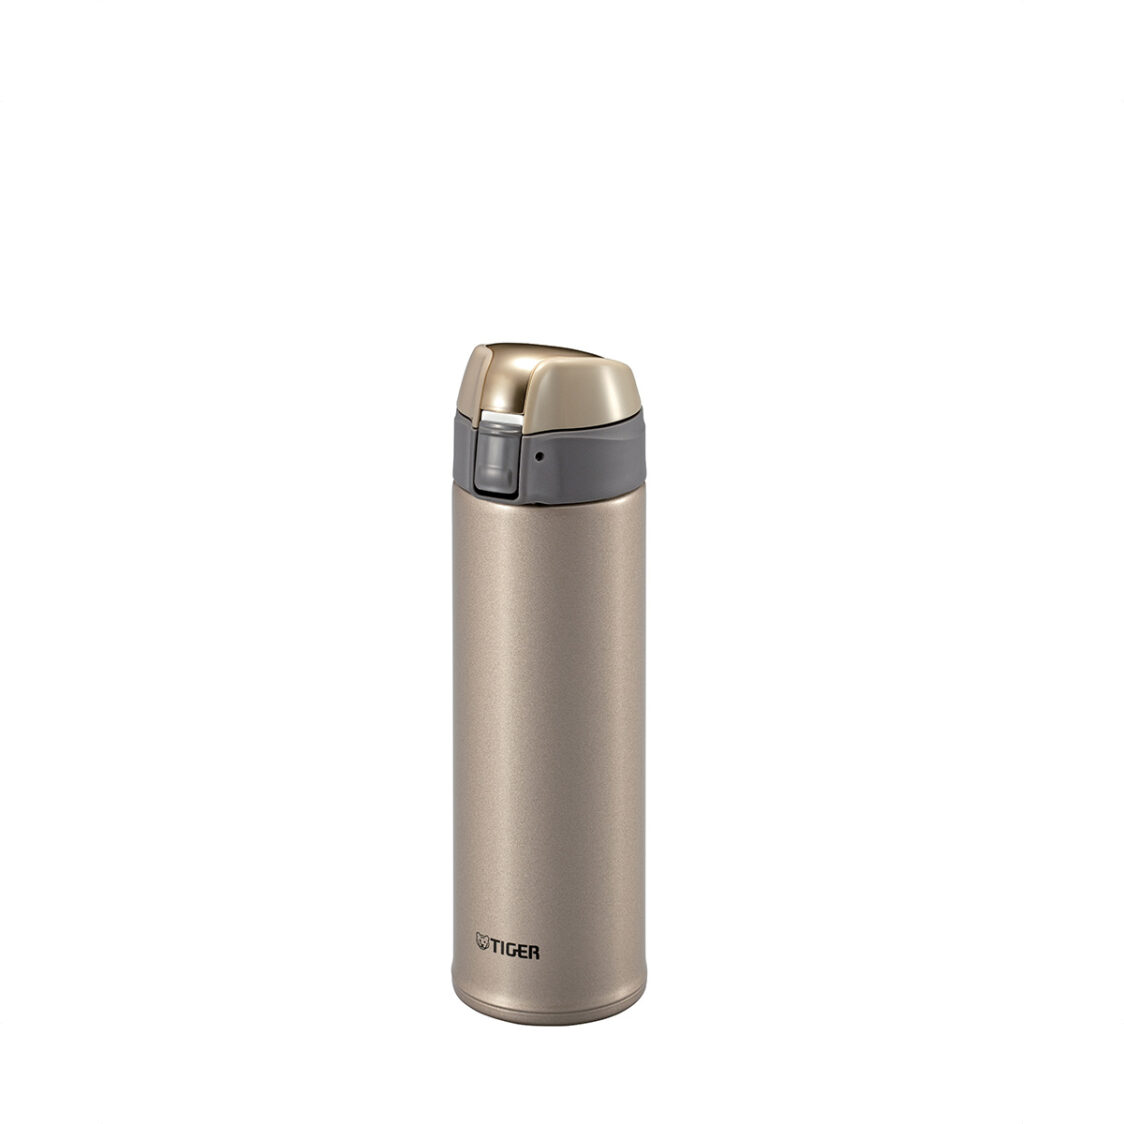 Tiger 500ml Double Stainless Steel Mug Champagne Gold MMQ-S050NH